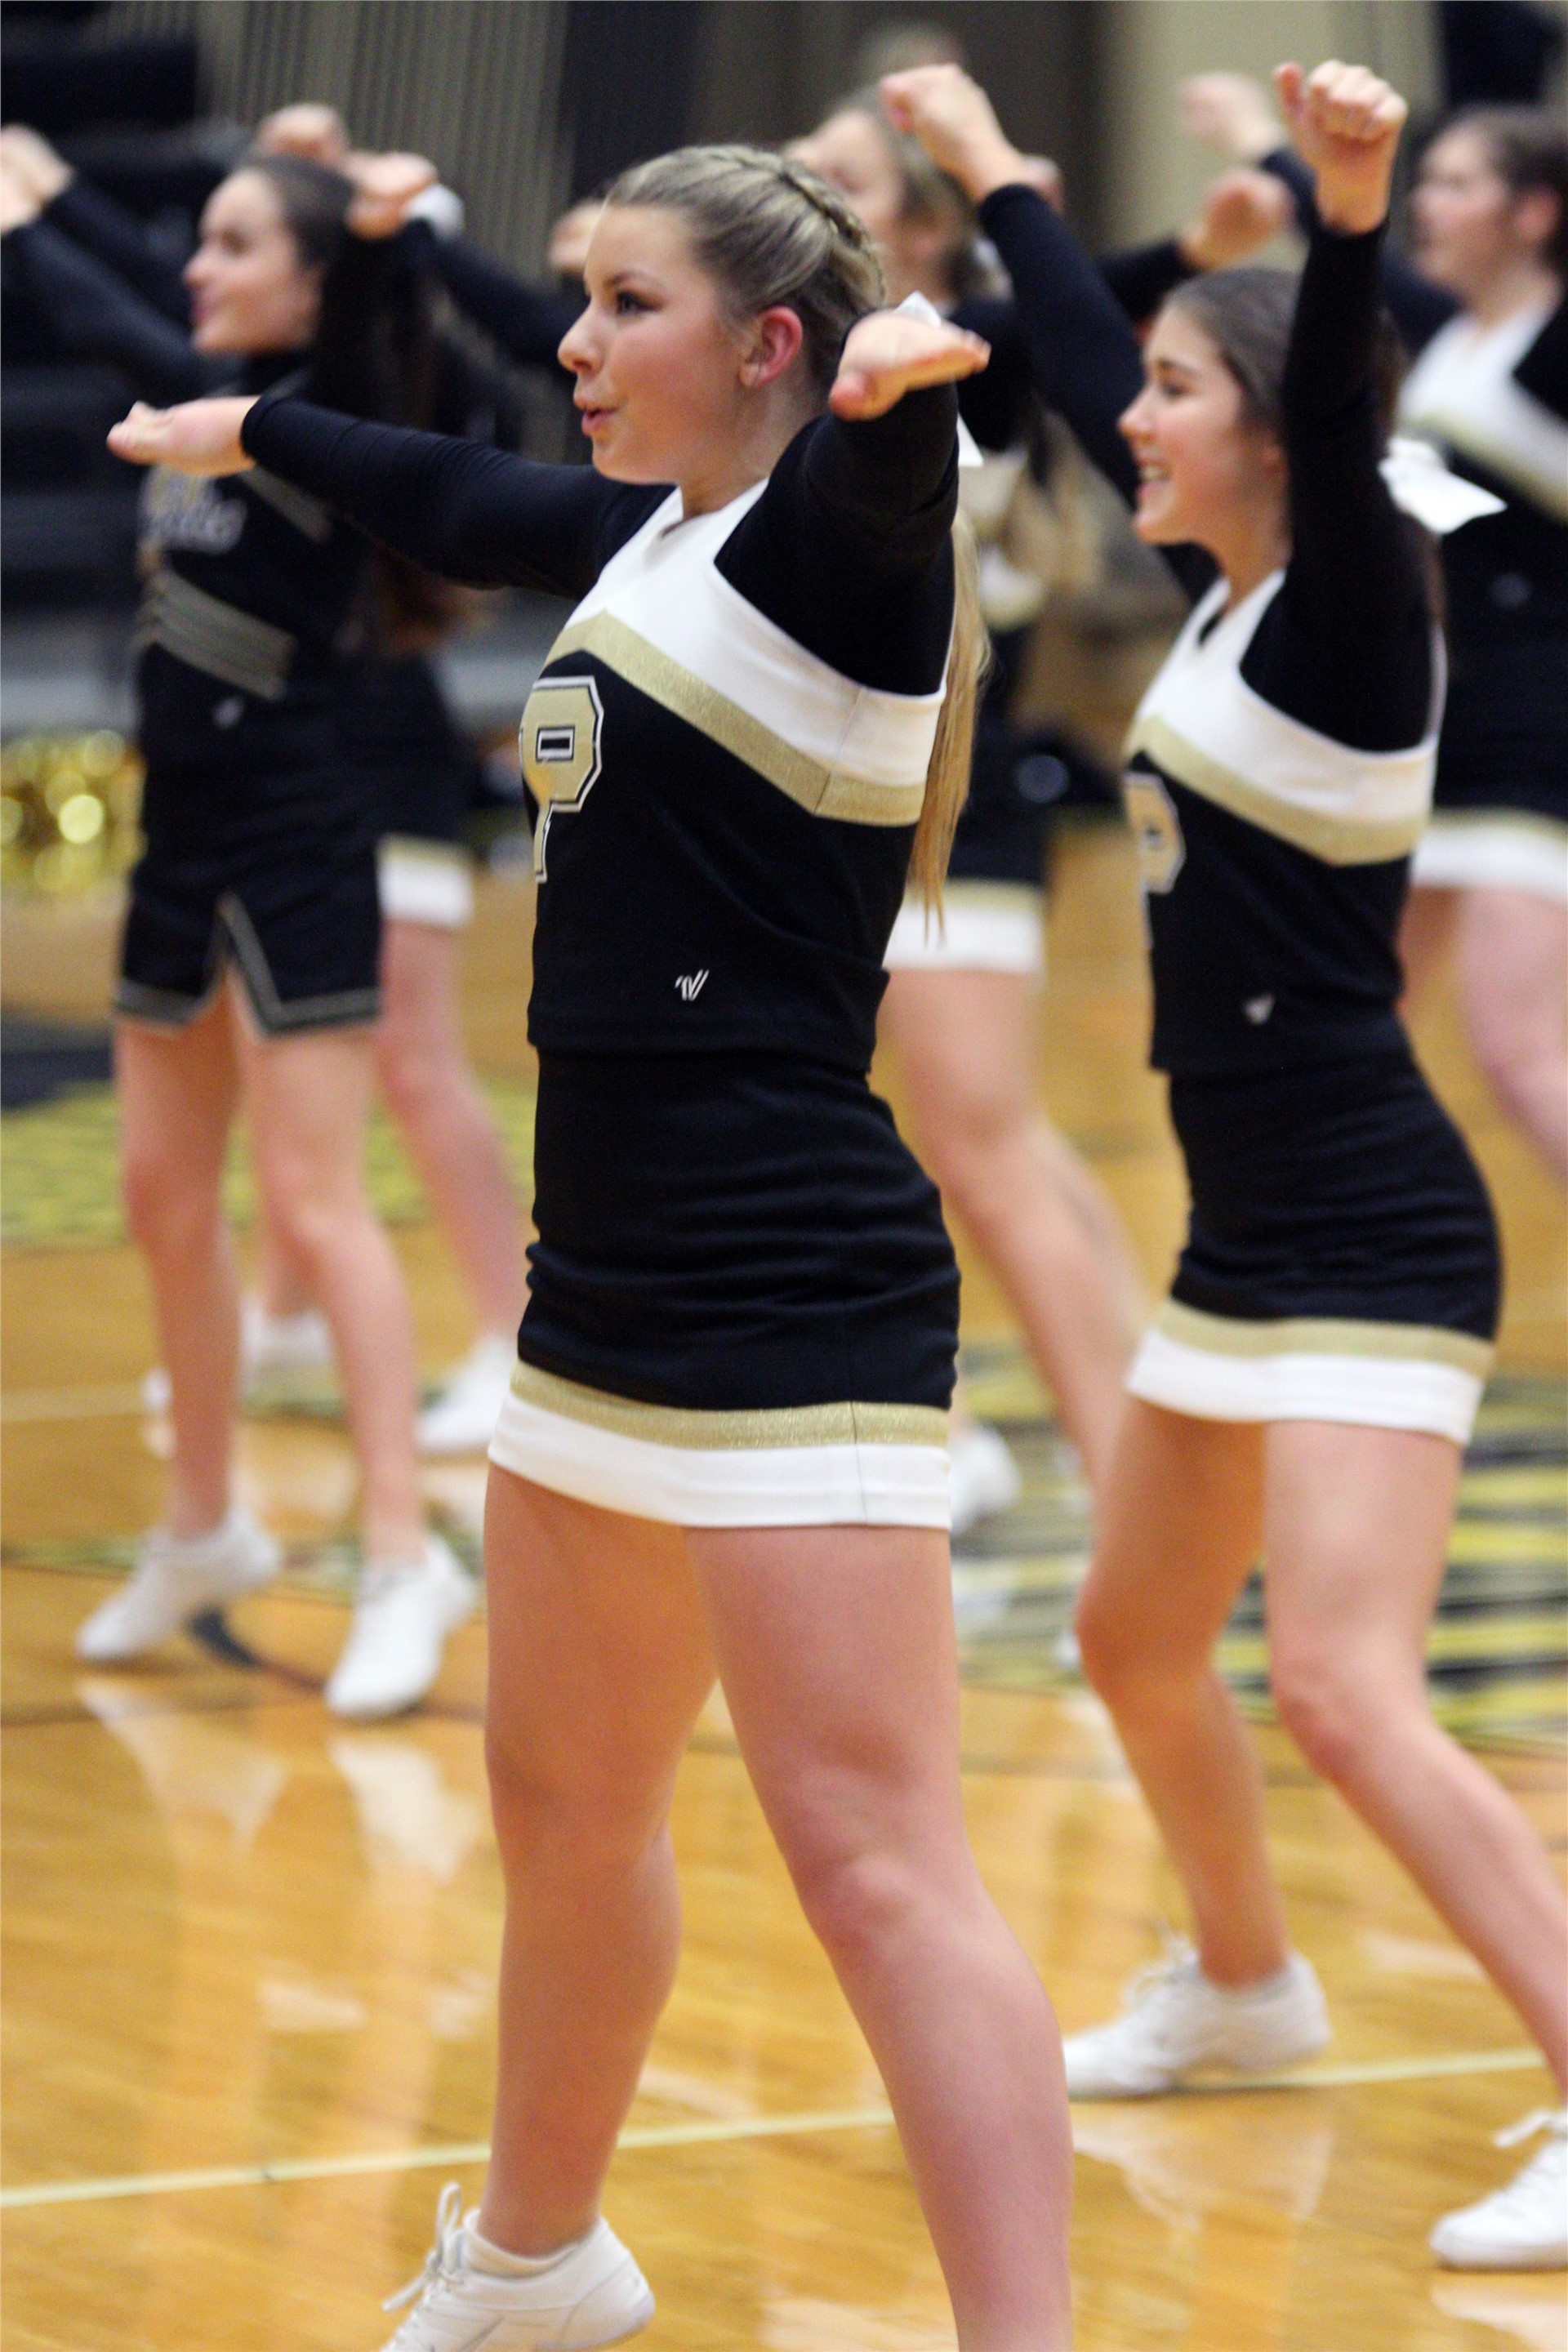 PHS cheerleader performing at a game